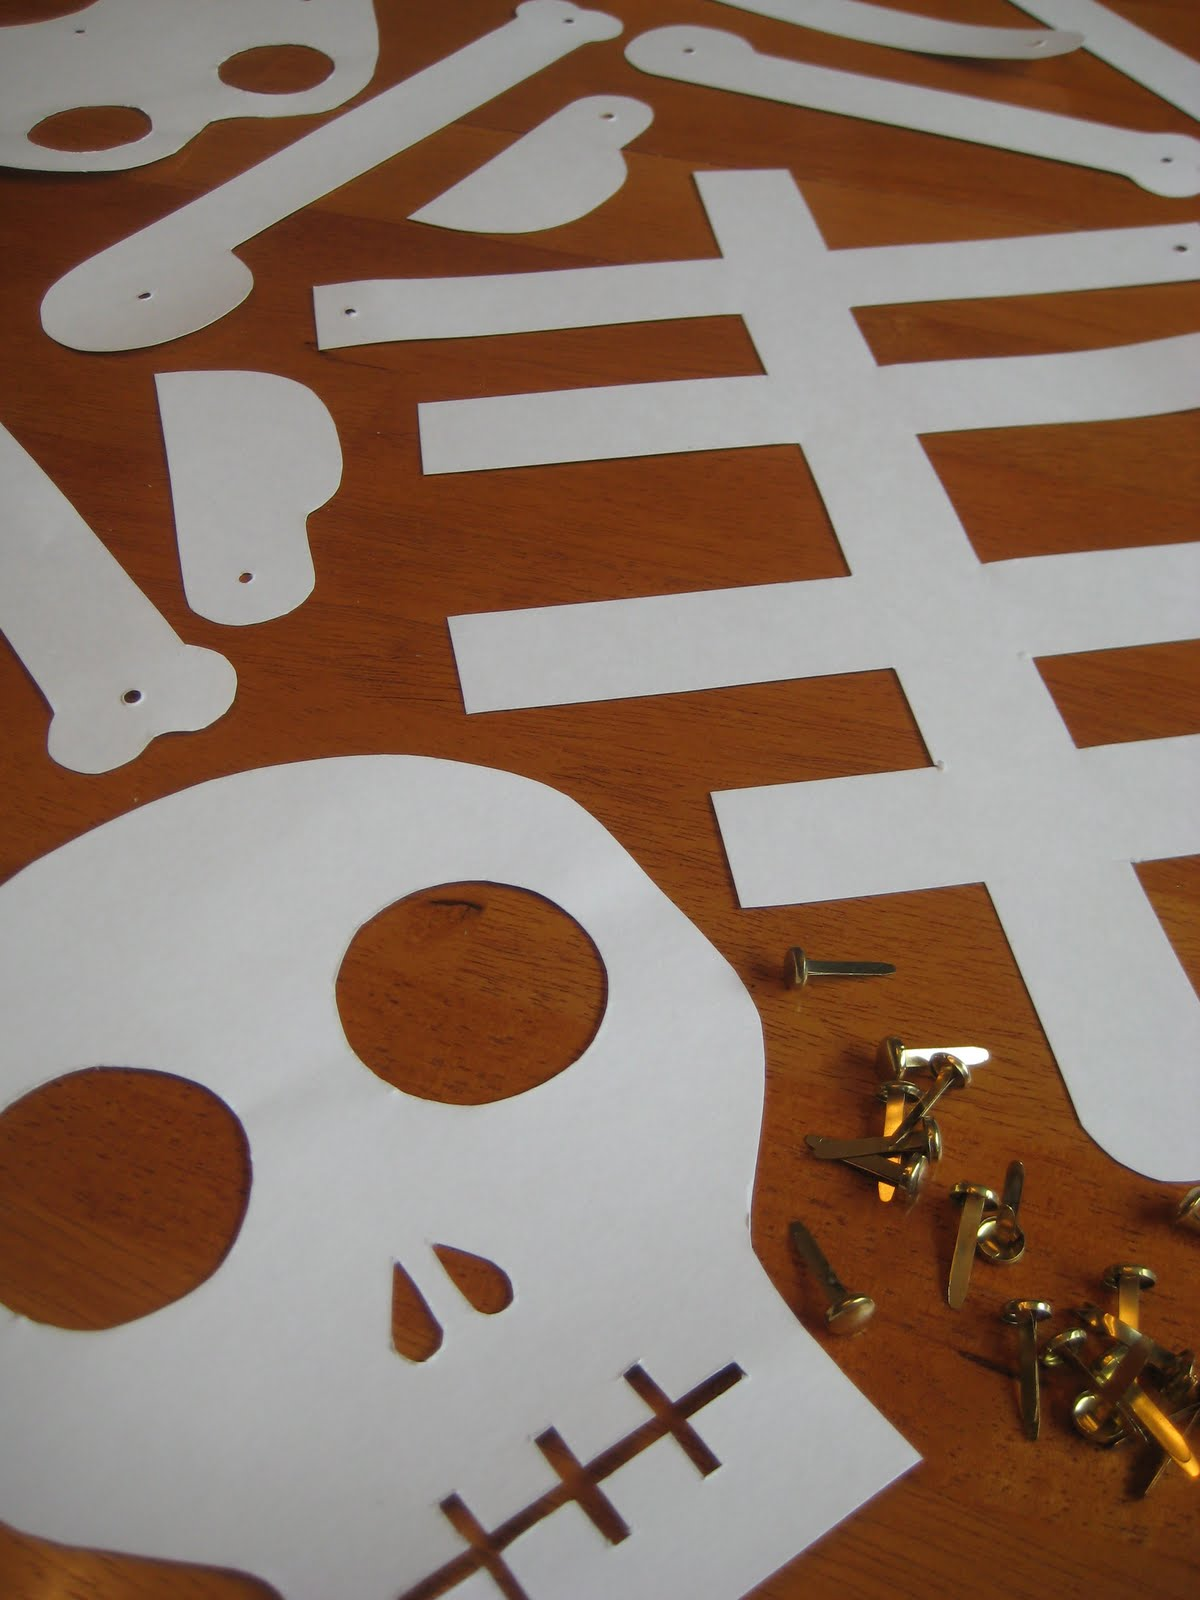 Relentlessly Fun Deceptively Educational Studying And Making Our Own Skeleton